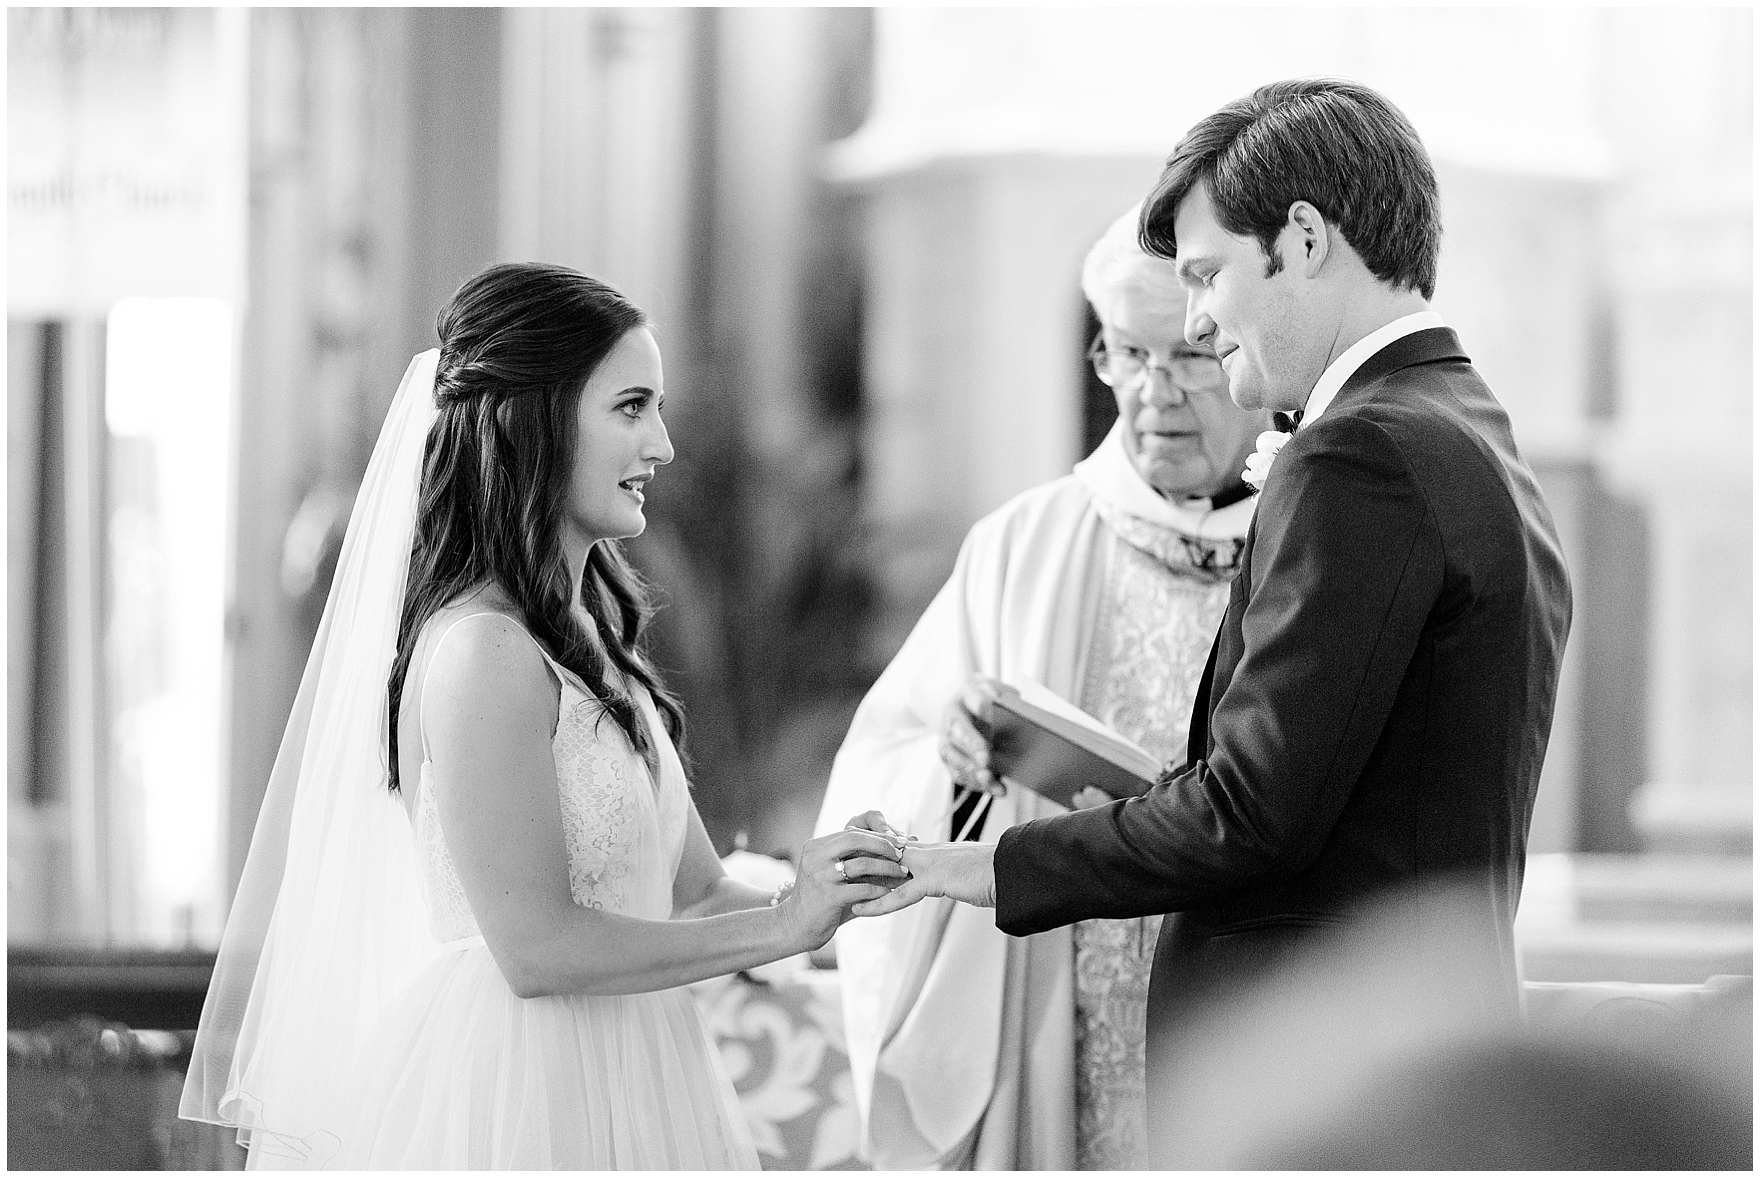 The bride and groom exchange rings in Chicago's historic Holy Family Church, site of the ceremony for a Butterfield Country Club wedding.